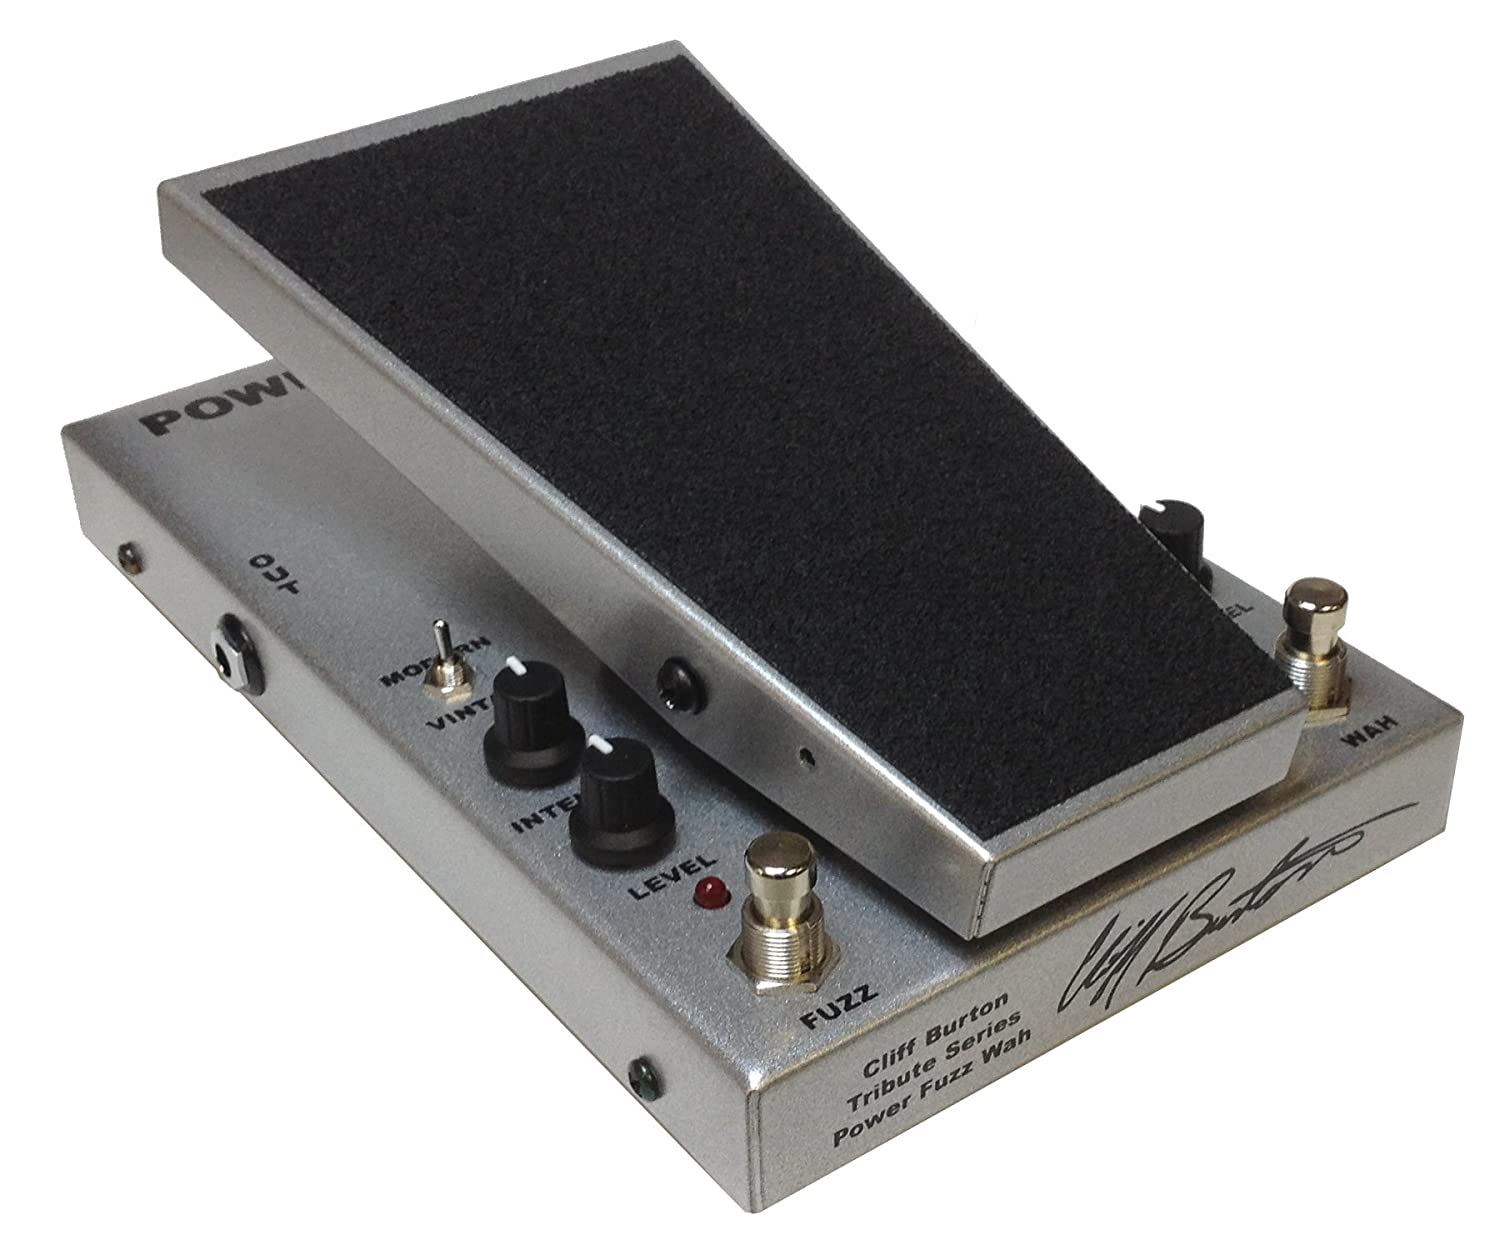 Morley PFW Cliff Burton Tribute Power Fuzz Wah Sound Enhancement Products Inc